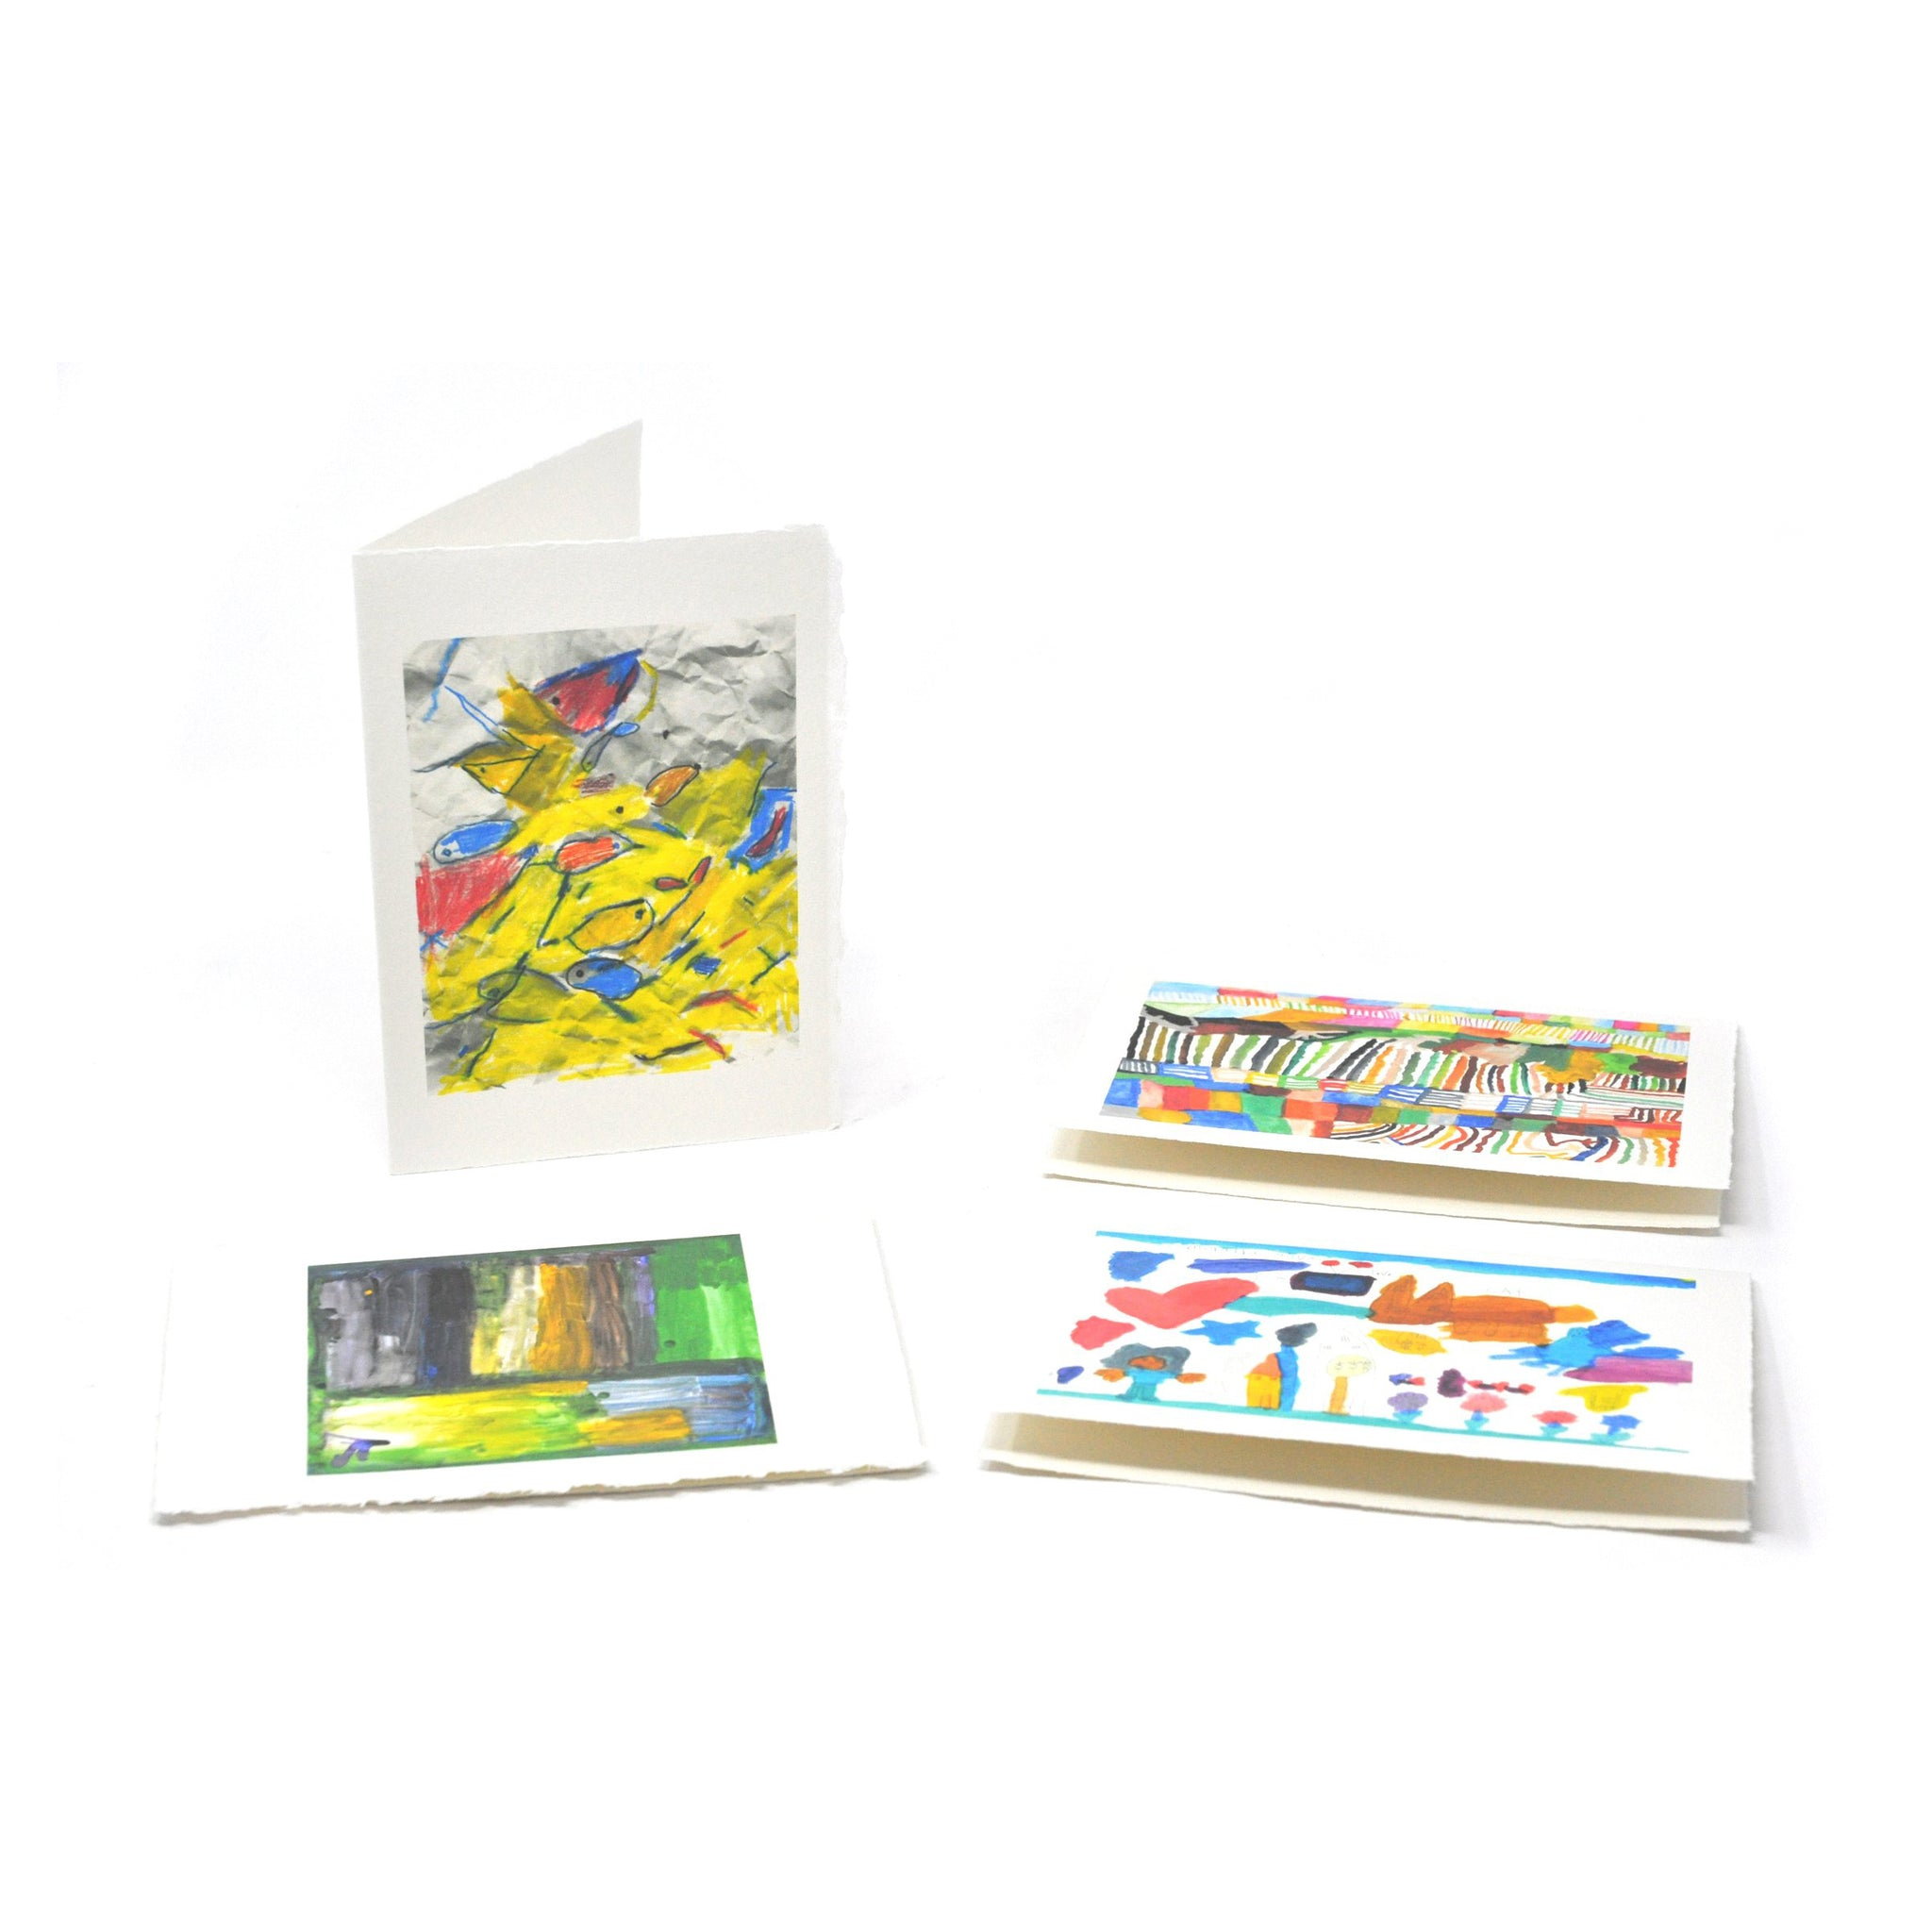 Greeting Cards: Semi-Abstract Four-Pack